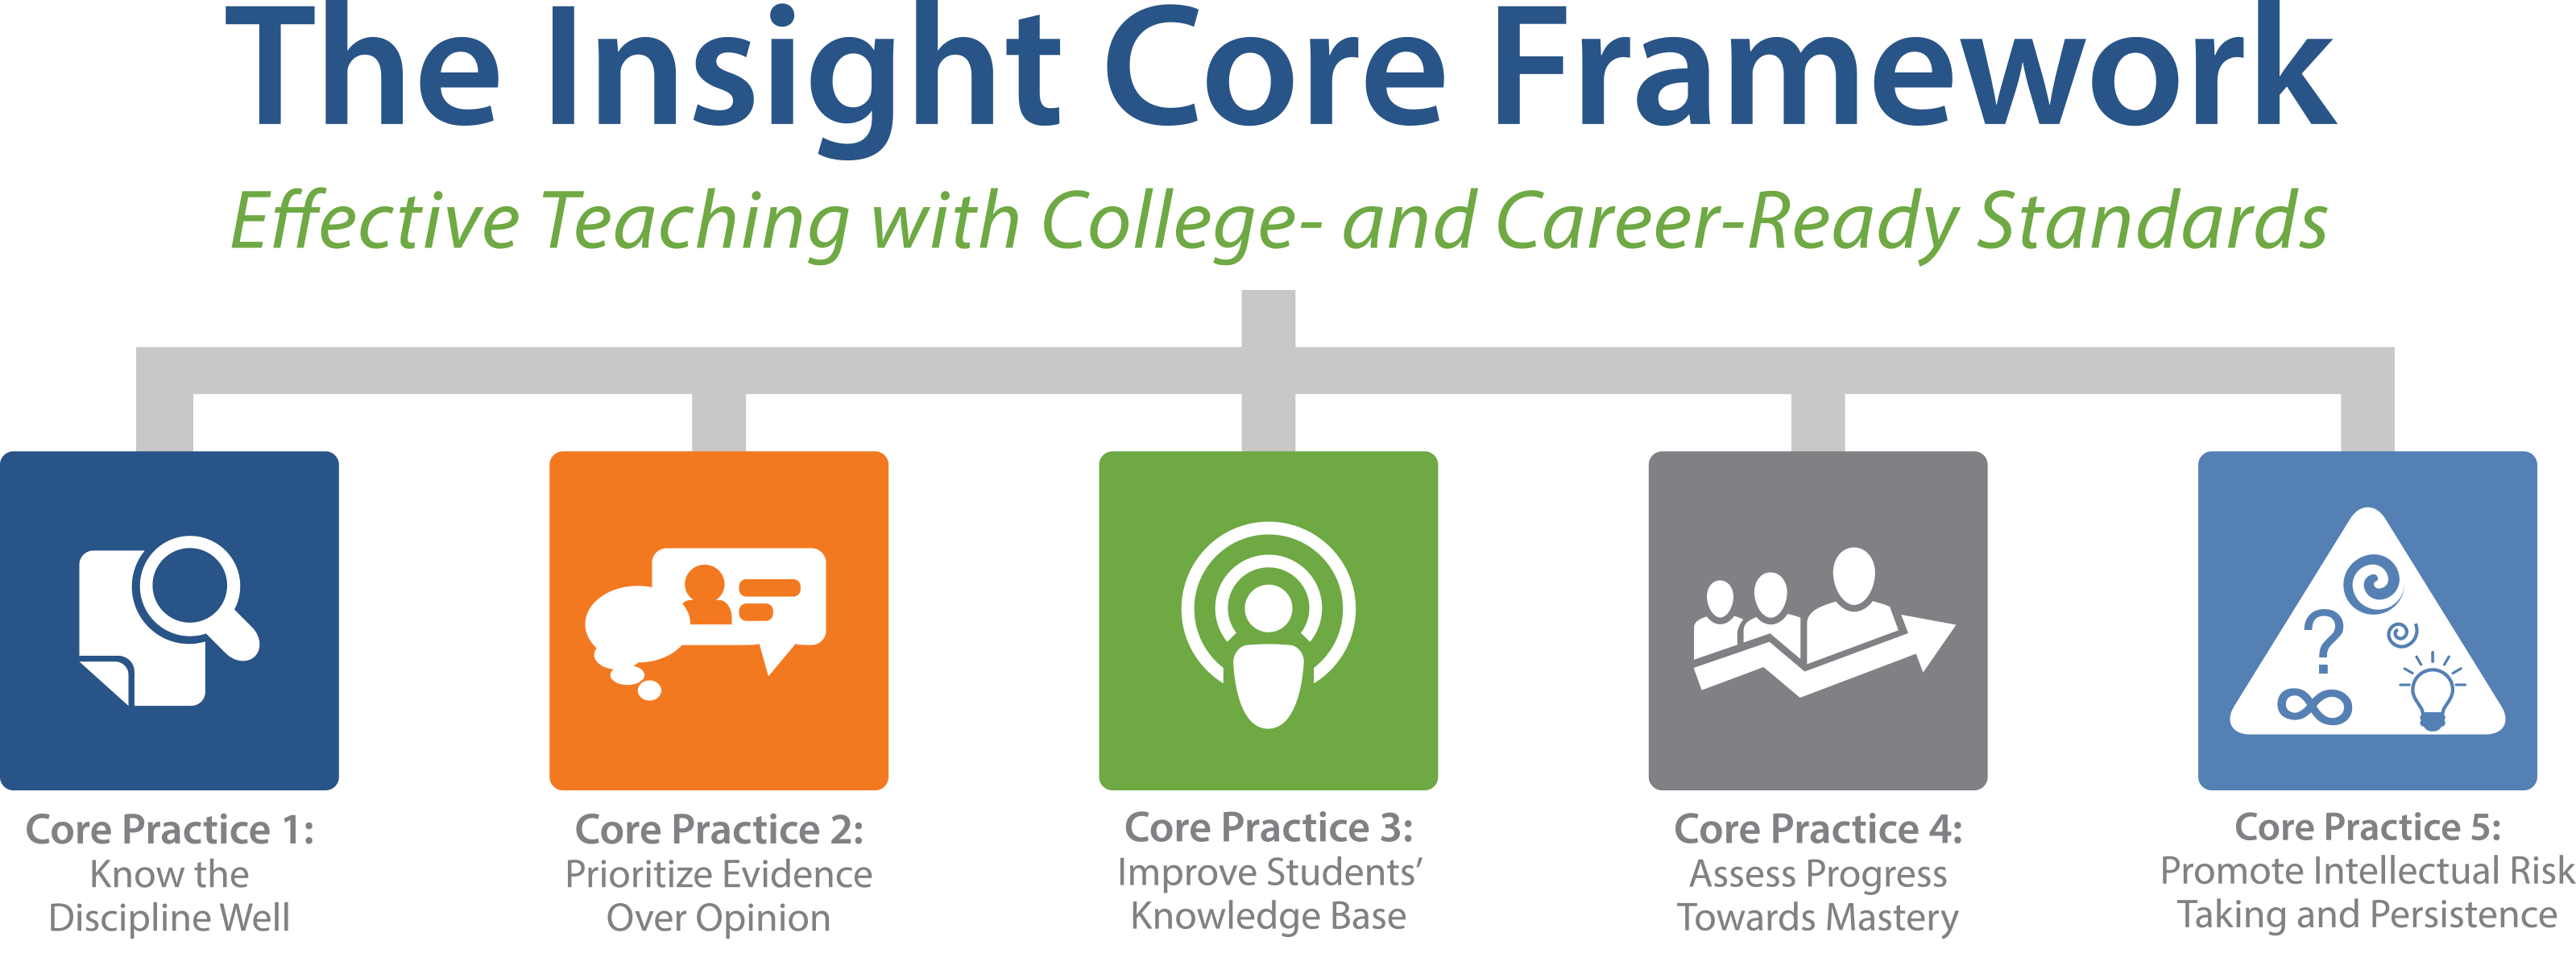 Insight Core Framework for College- and Career-Ready Standards